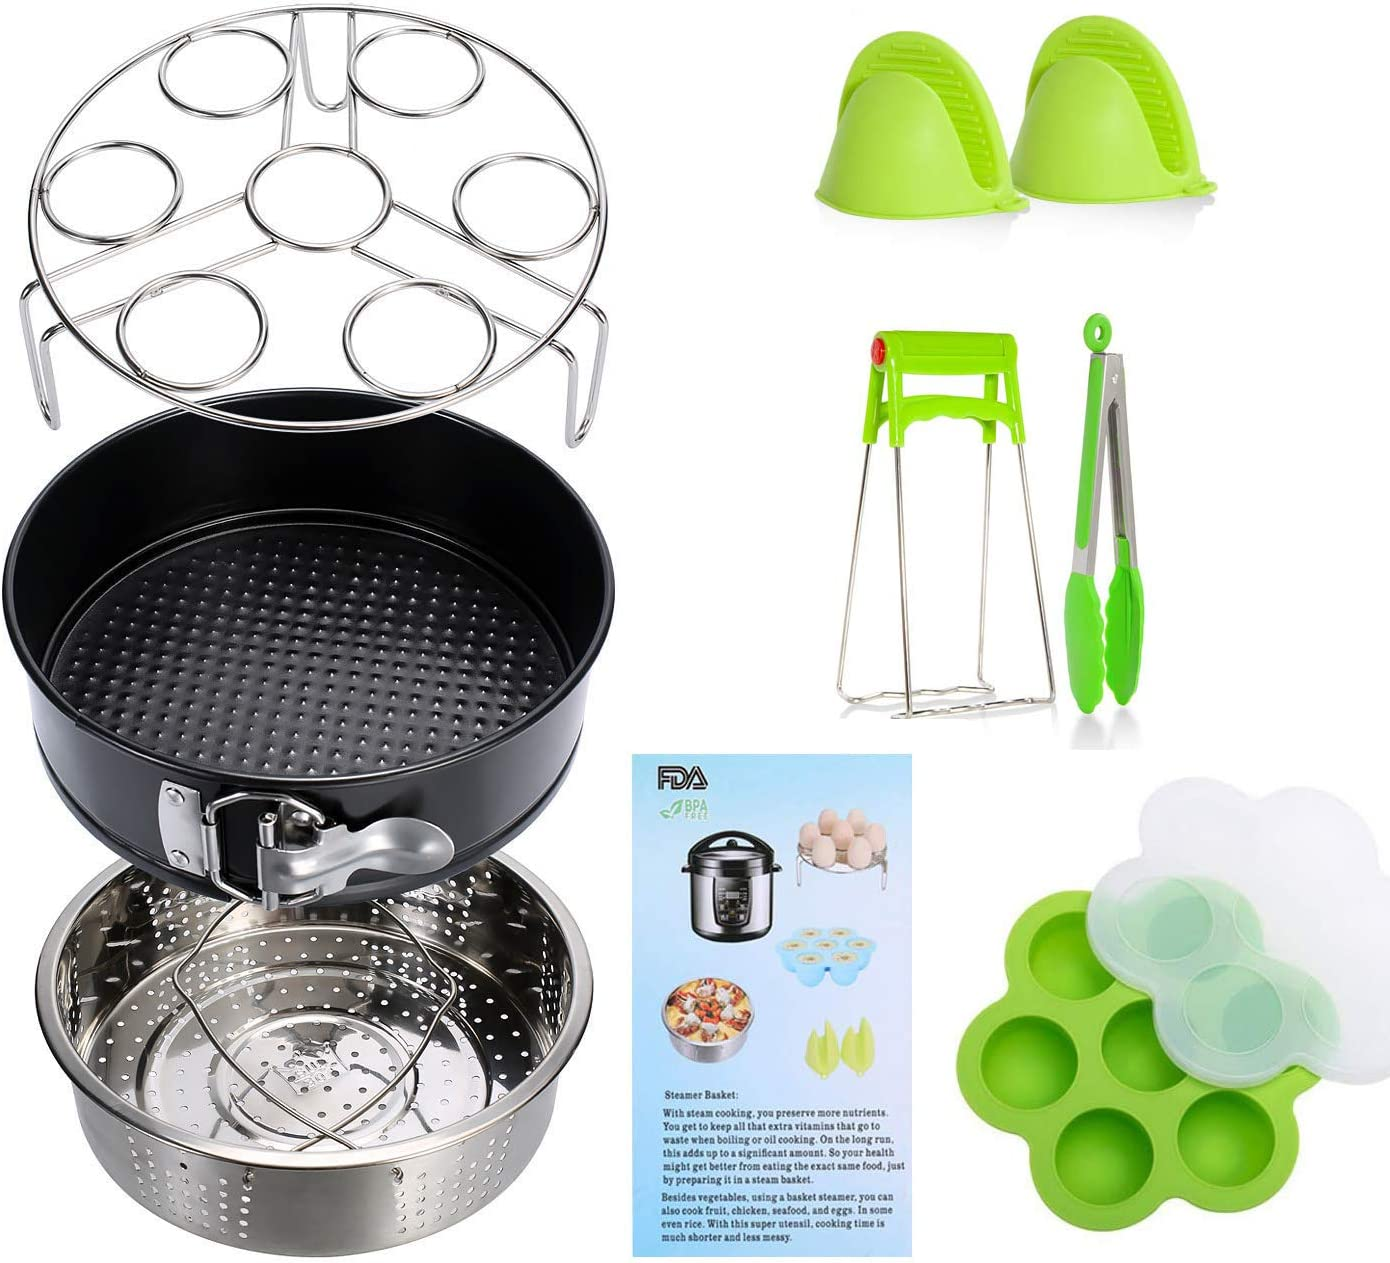 Instant Pot Accessories Set 11 Pcs 5,6,8Qt Steamer Basket Non-Stick Springform Pan, Steamer Basket, Egg Steamer Rack, Silicone Kitchen Tongs, Mini Mitts Fits 5,6,8Qt Instant Pot Pressure Cooker(green)